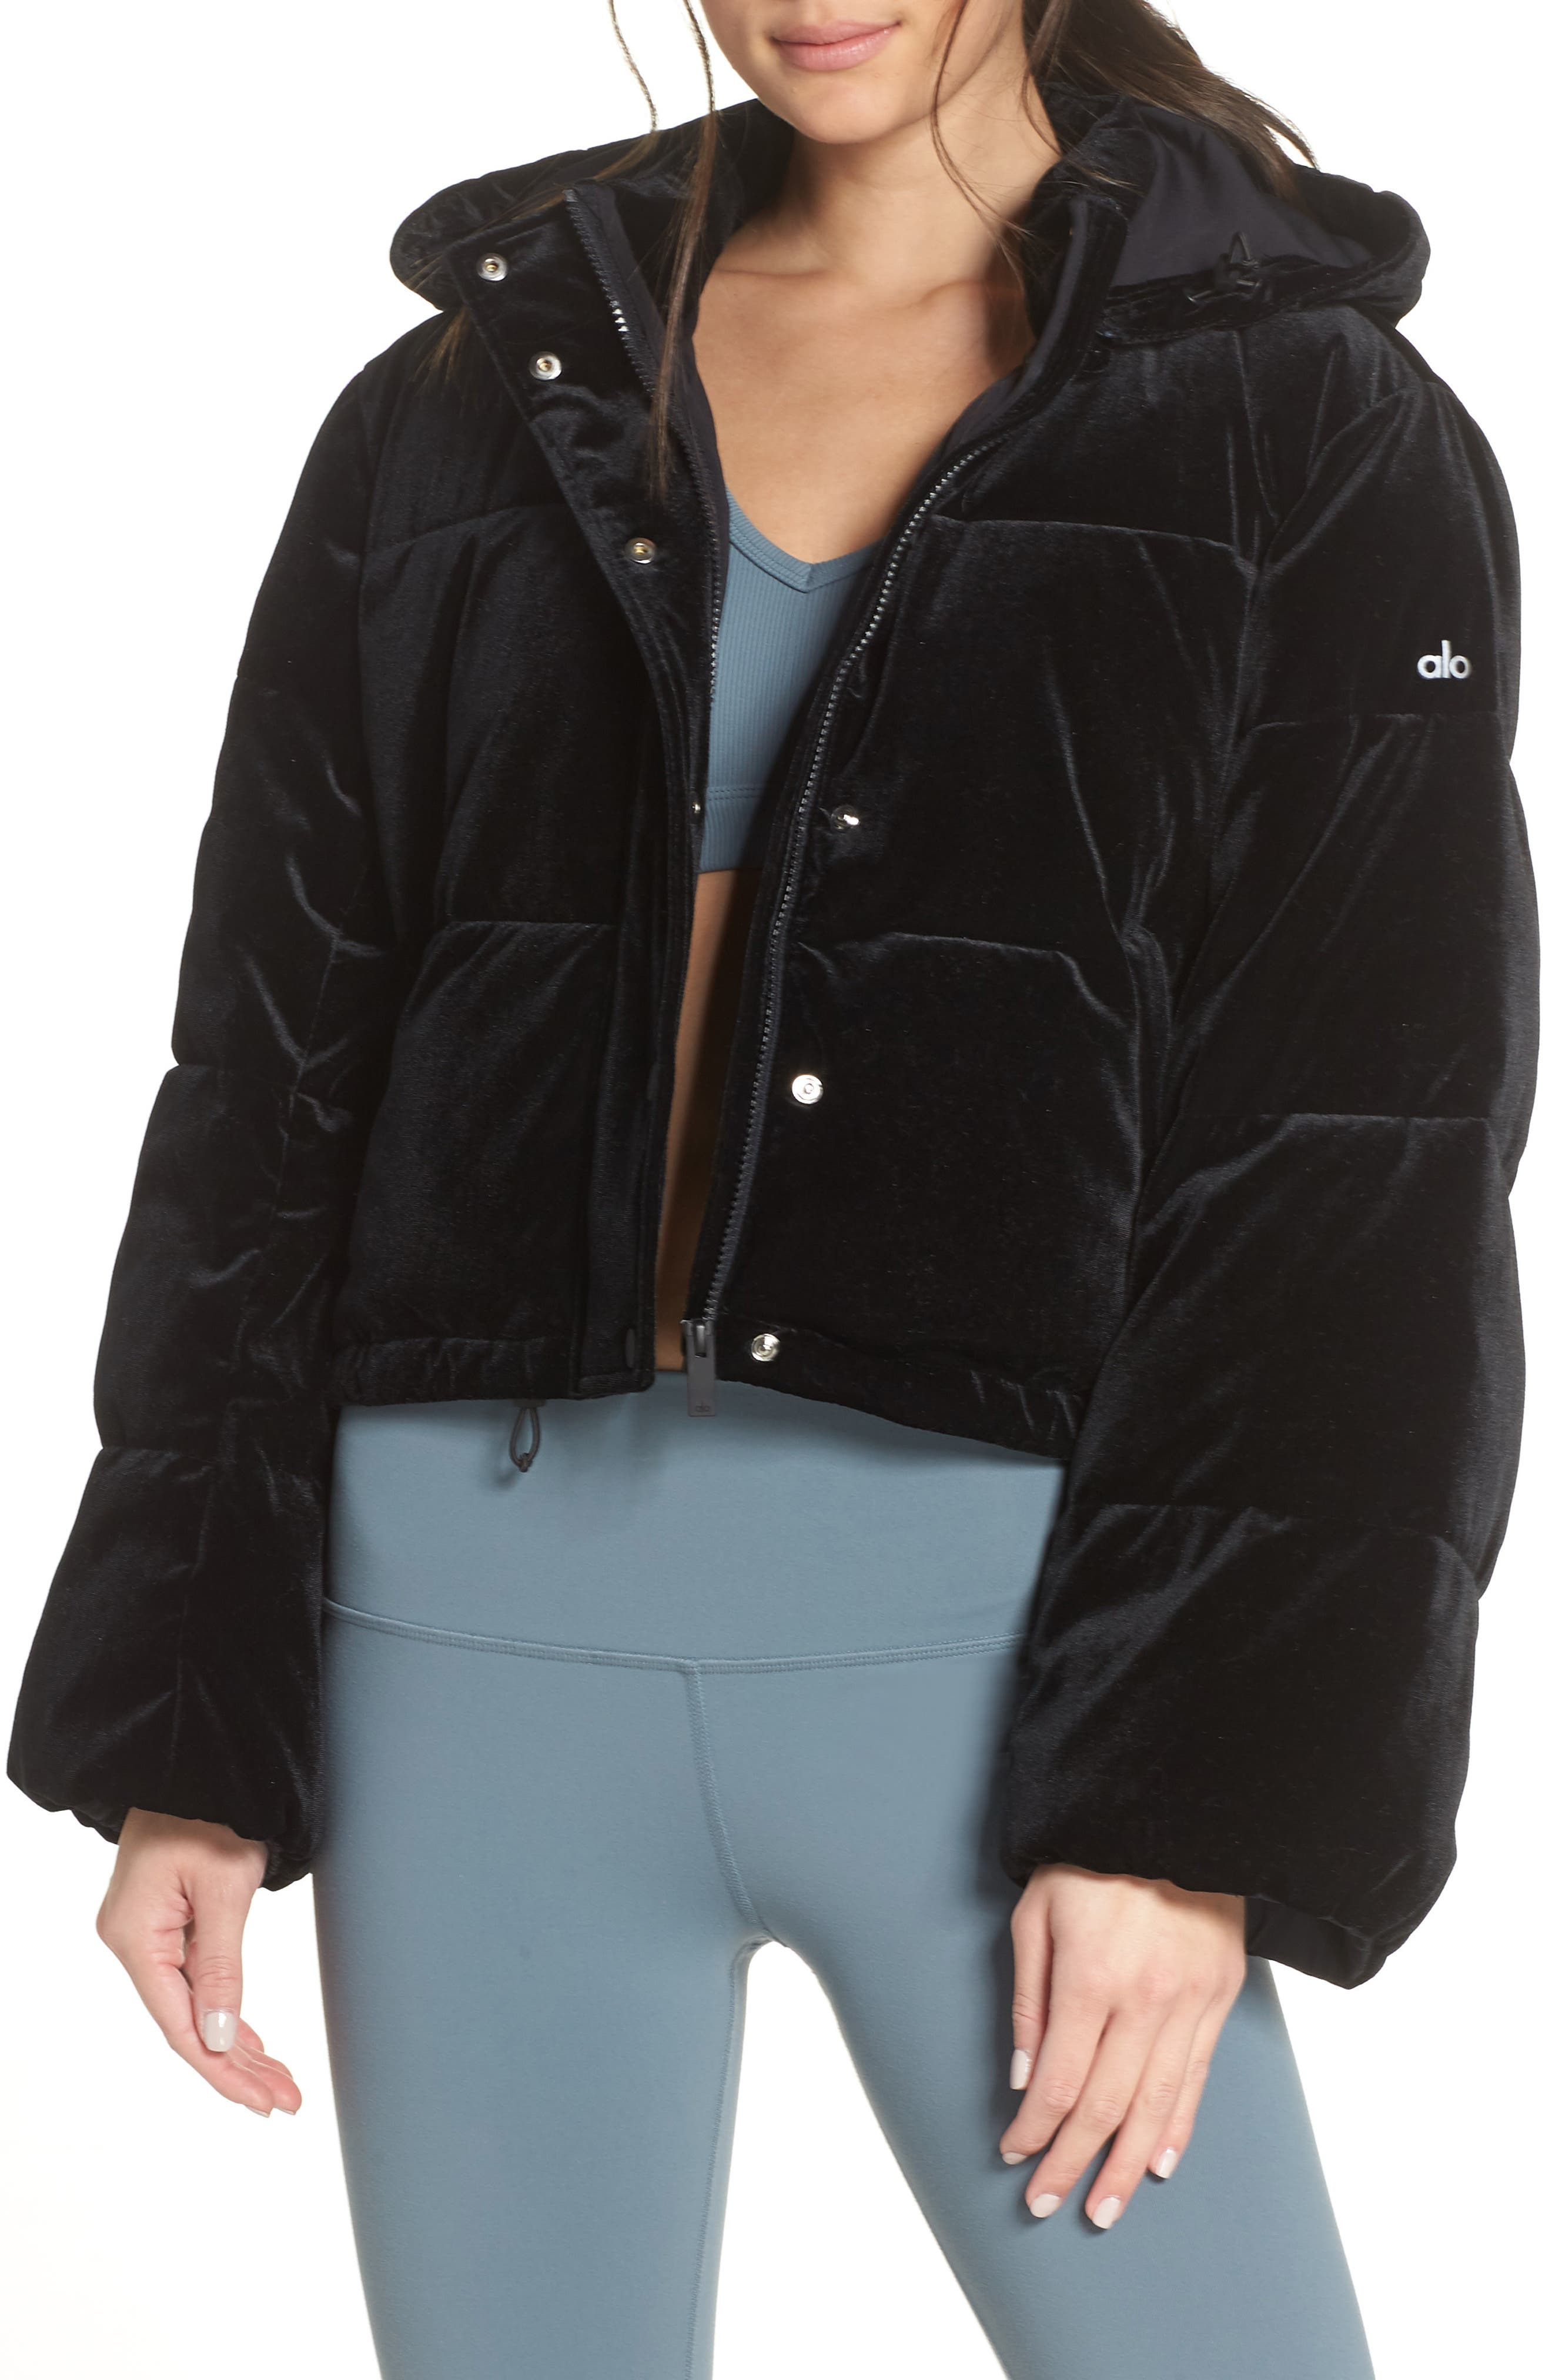 ALO, Velvet Puffer Jacket, Main thumbnail 1, color, 001